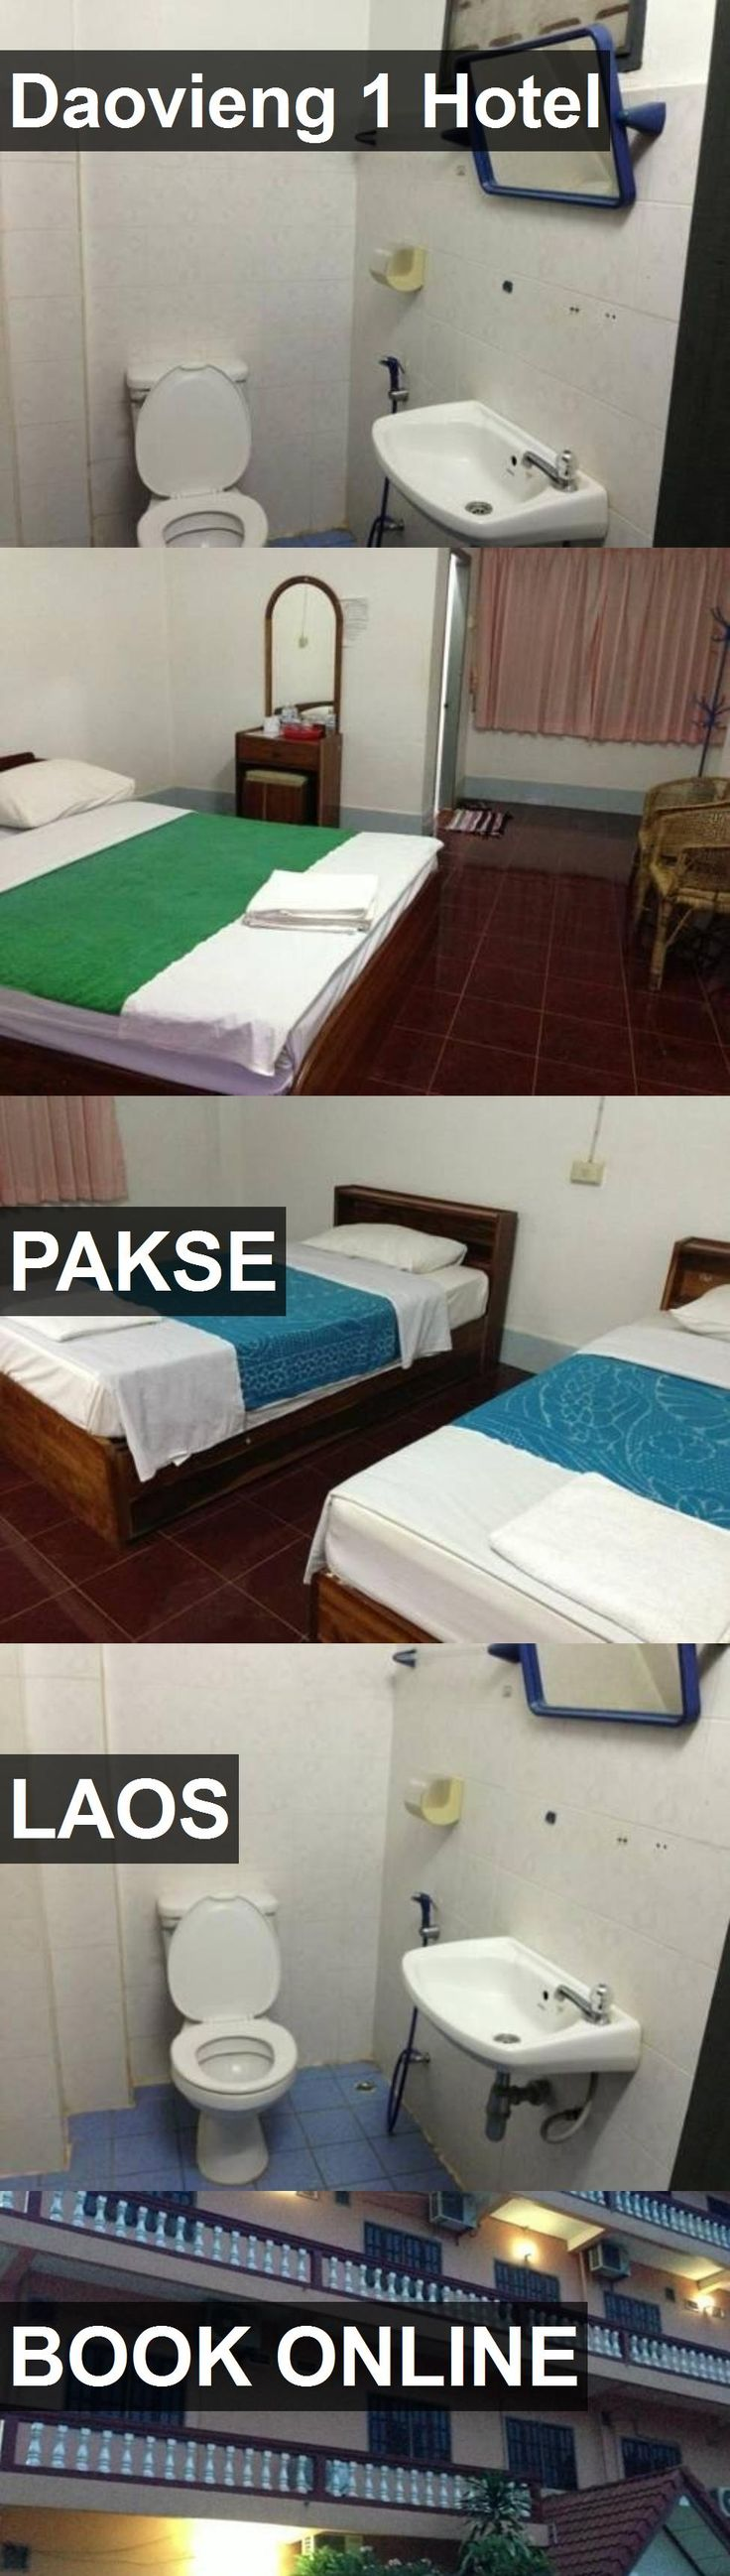 Daovieng 1 Hotel in Pakse, Laos. For more information, photos, reviews and best prices please follow the link. #Laos #Pakse #travel #vacation #hotel